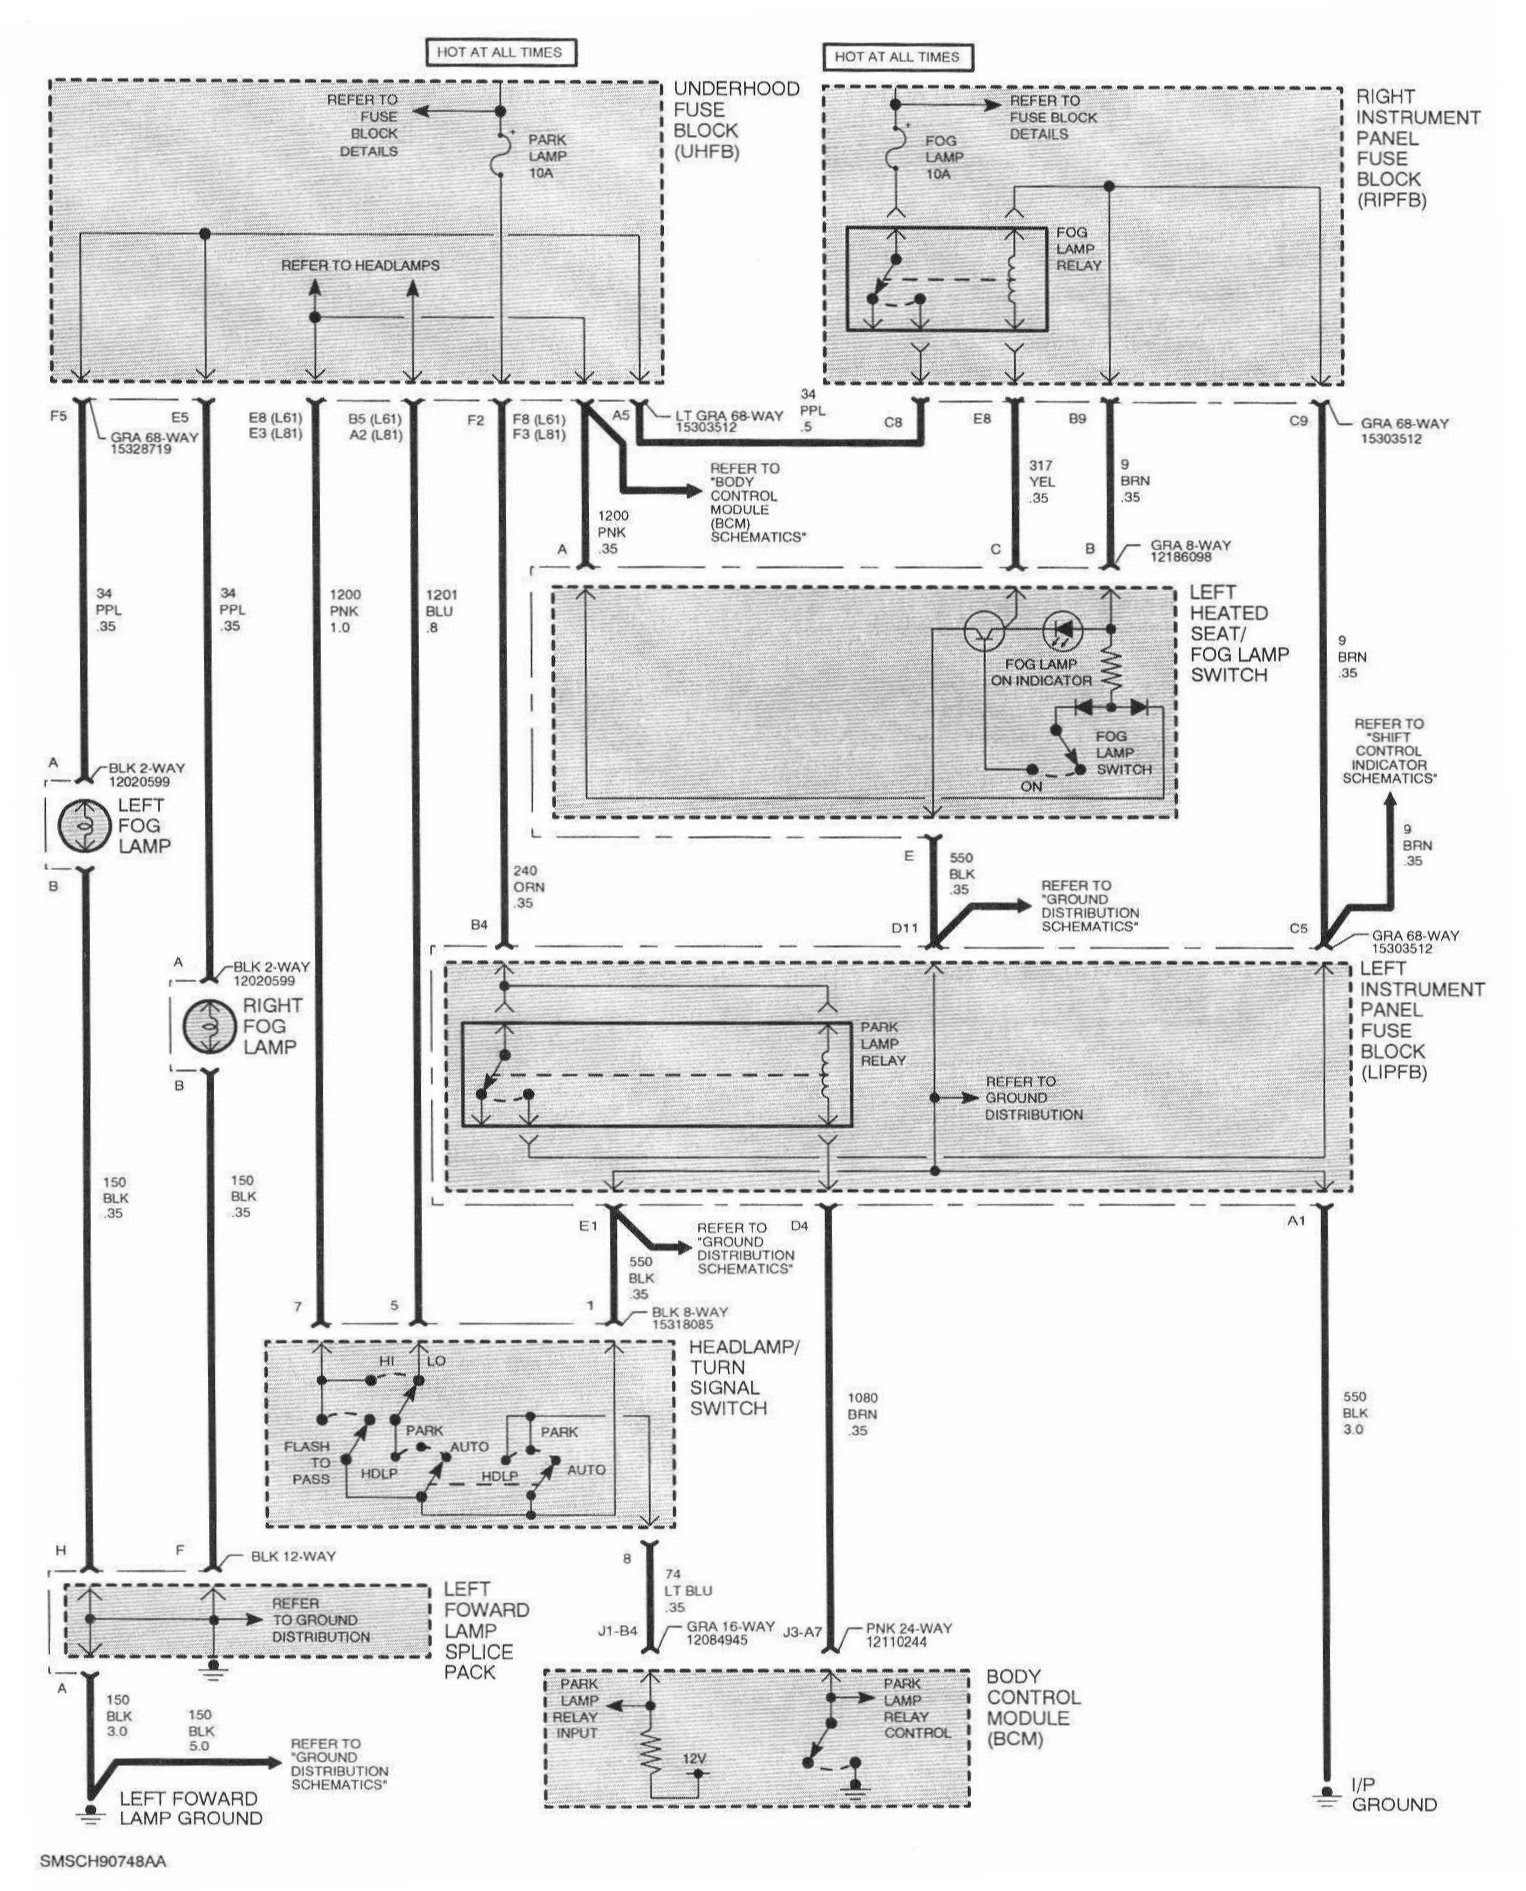 45 Best Of 2001 Saturn Sl1 Starter Wiring Diagram